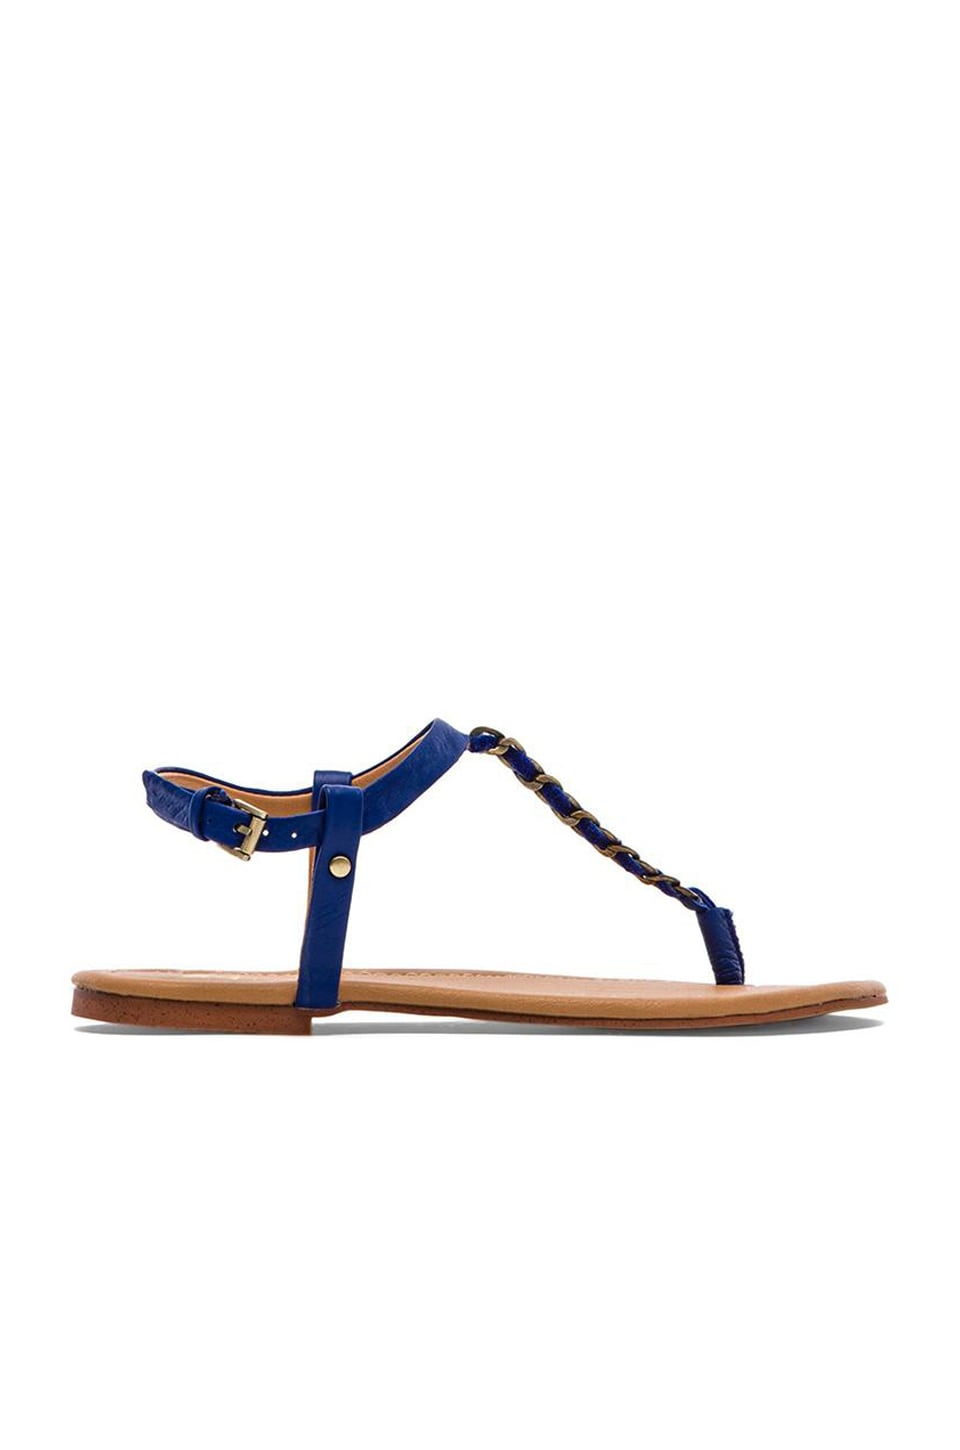 Joe's Jeans Eleanor Sandal in Cobalt Blue